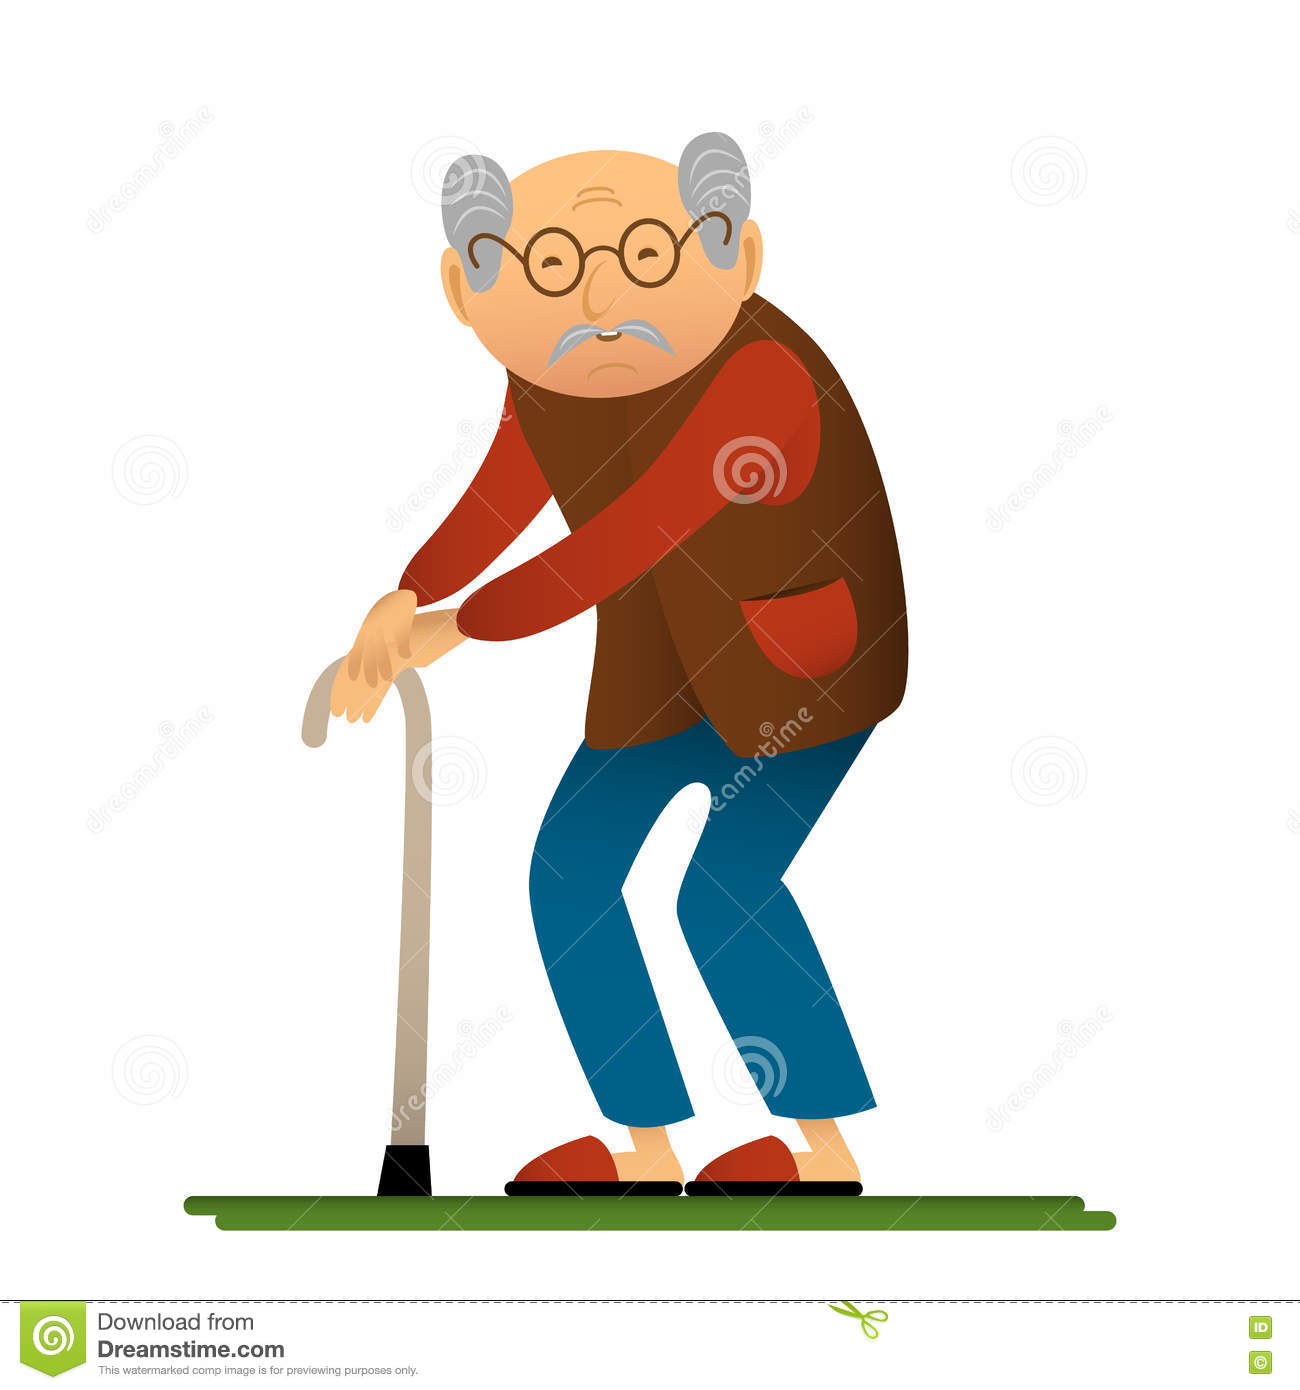 Cartoon Characters Old Man : Funny illustration of old man with cane cartoon character